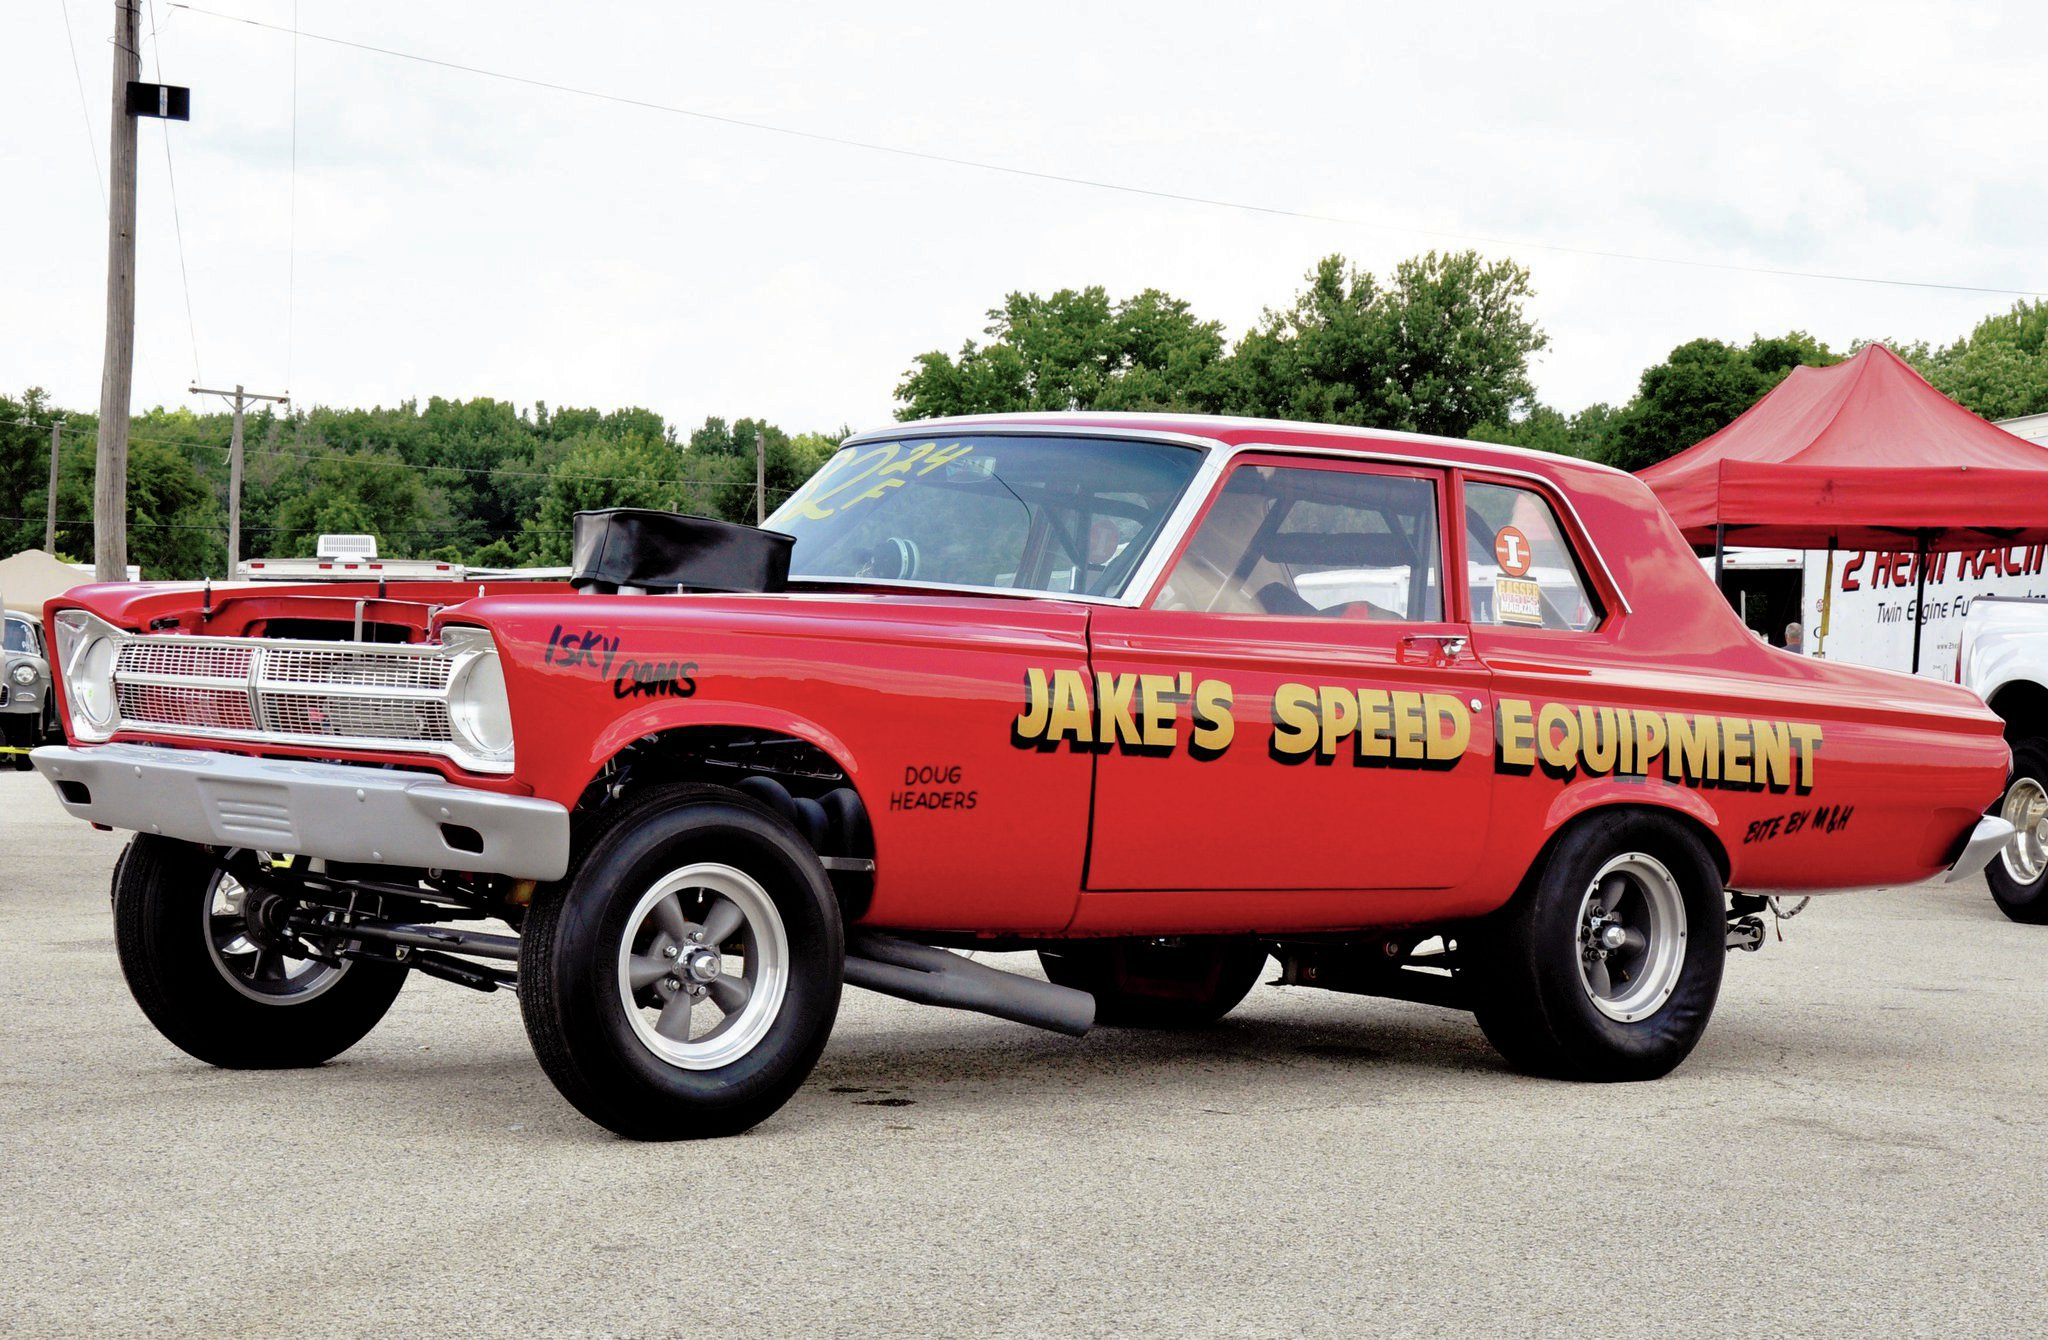 This AWB Mopar started life as a '65 A990 Hemi car originally owned by legendary race team Candies and Hughes. Jim Paulsen bought the car in 1991 in Union Grove, Wisconsin. Jim restored the car in 1992 and had none other than Dick Landy build the Hilborn-alcohol-injected 426 Hemi engine. Jim just pulled this incredible AWB Plymouth out for Meltdown Drags after a 10-year hibernation.